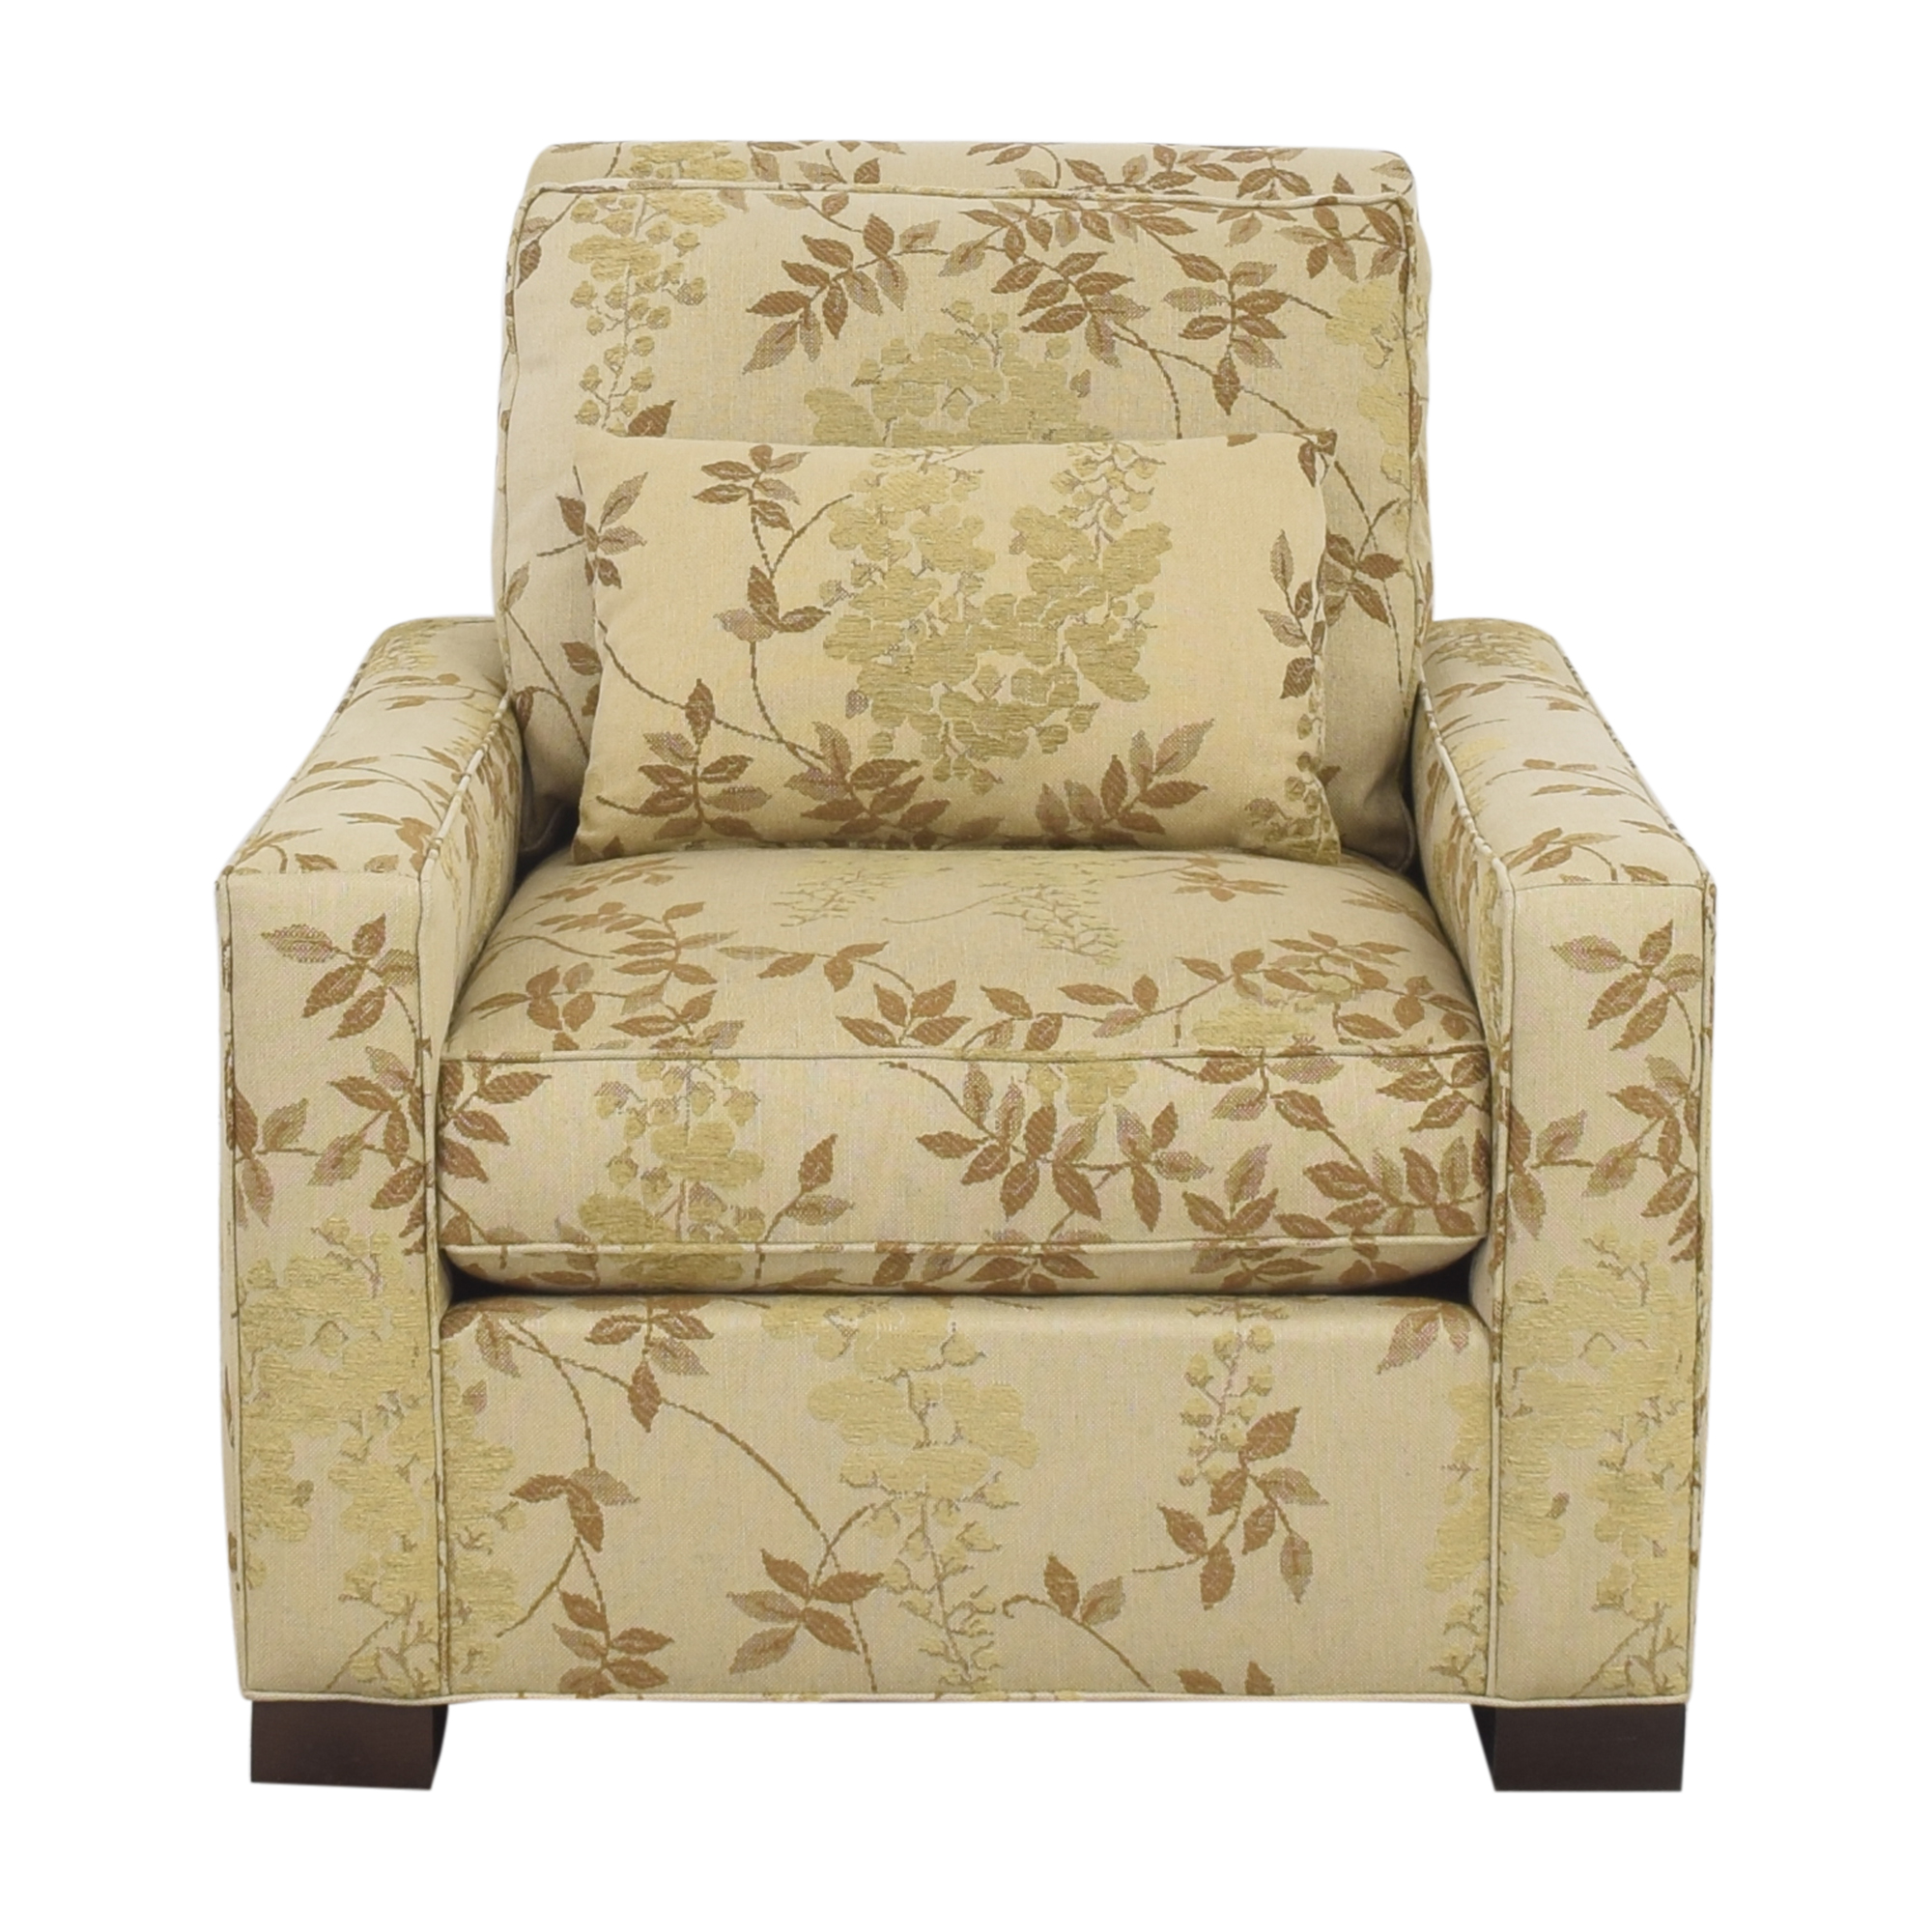 buy Hickory Chair Upholstered Club Chair Hickory Chair